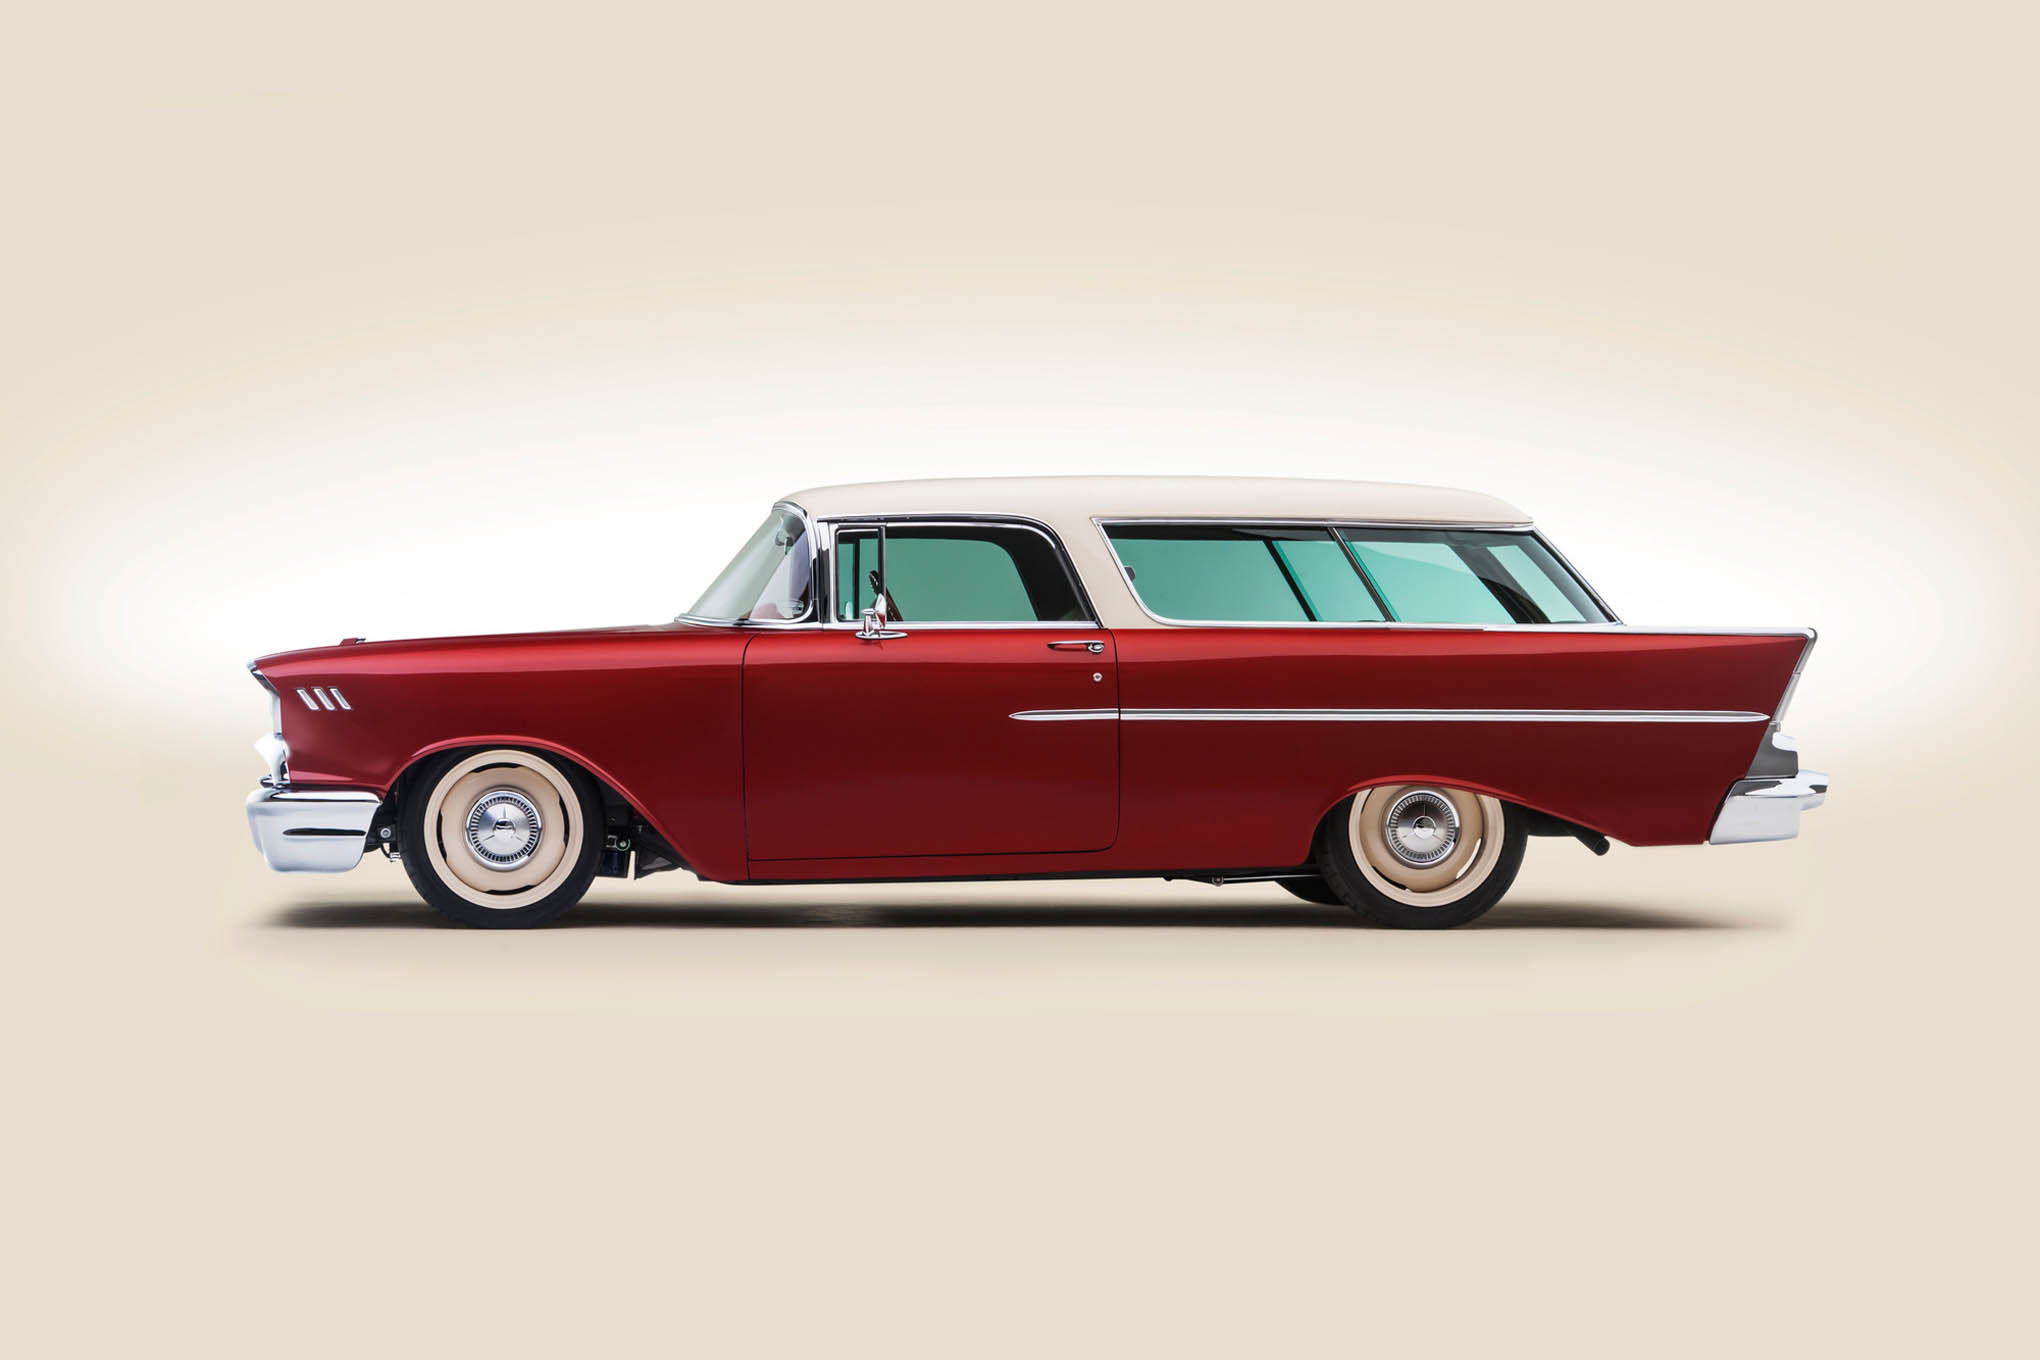 1957 Chevrolet Nomad Hd Wallpaper Background Image 2040x1360 Chevy Wagon Wallpapers Id743060